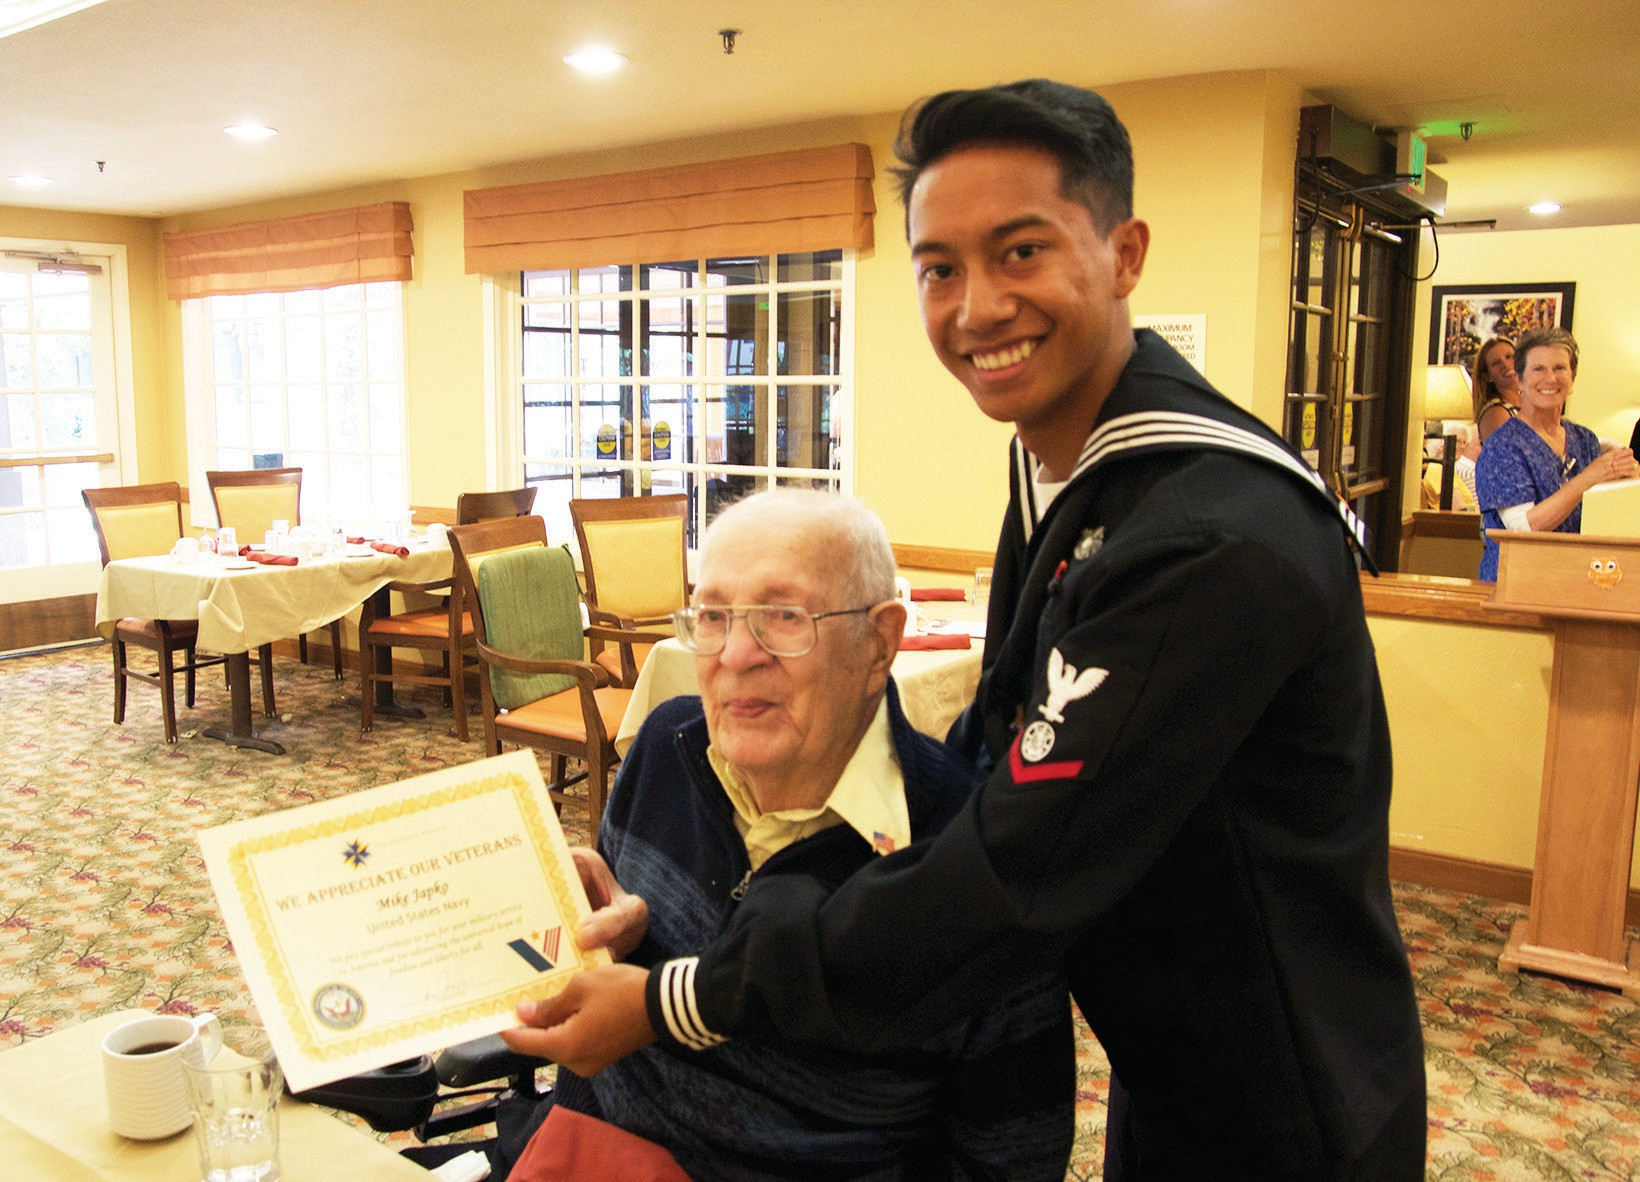 Mike Japko, Navy veteran, is presented with a certificate of appreciation from a Sailor stationed at Camp Pendleton.